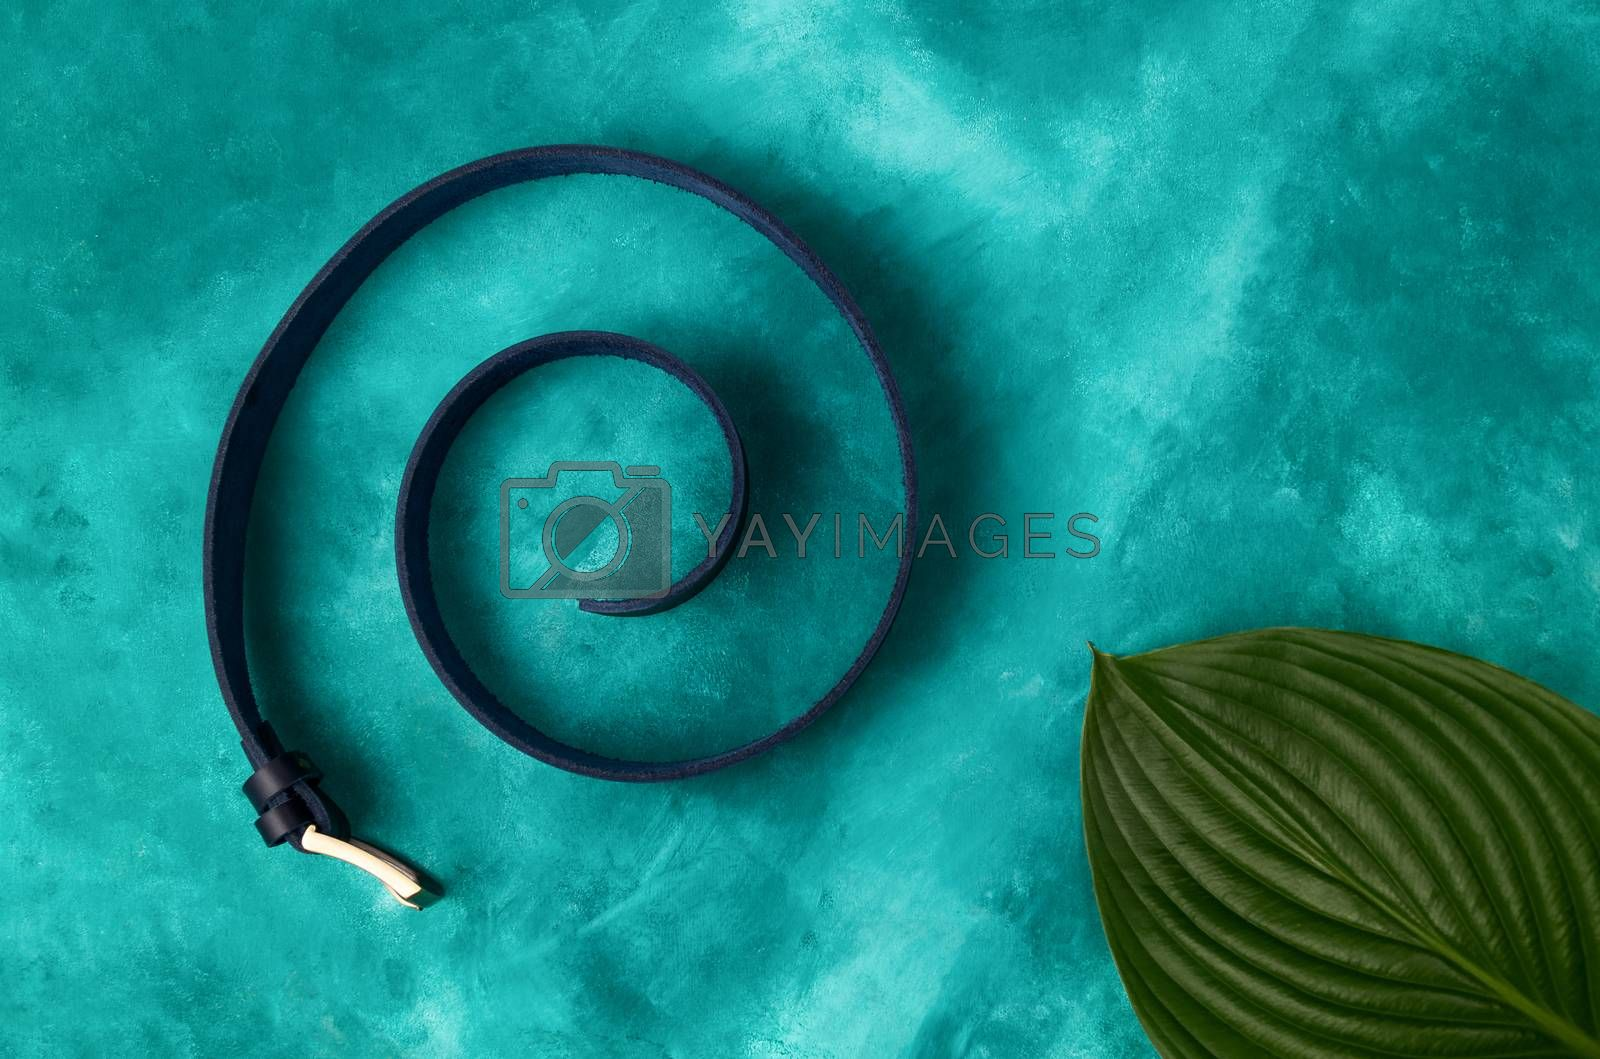 A male  fashion handmade leather belt in spiral with bif plant leaf in right down corner on turquoise background. Luxury minimalism conceptual photo.